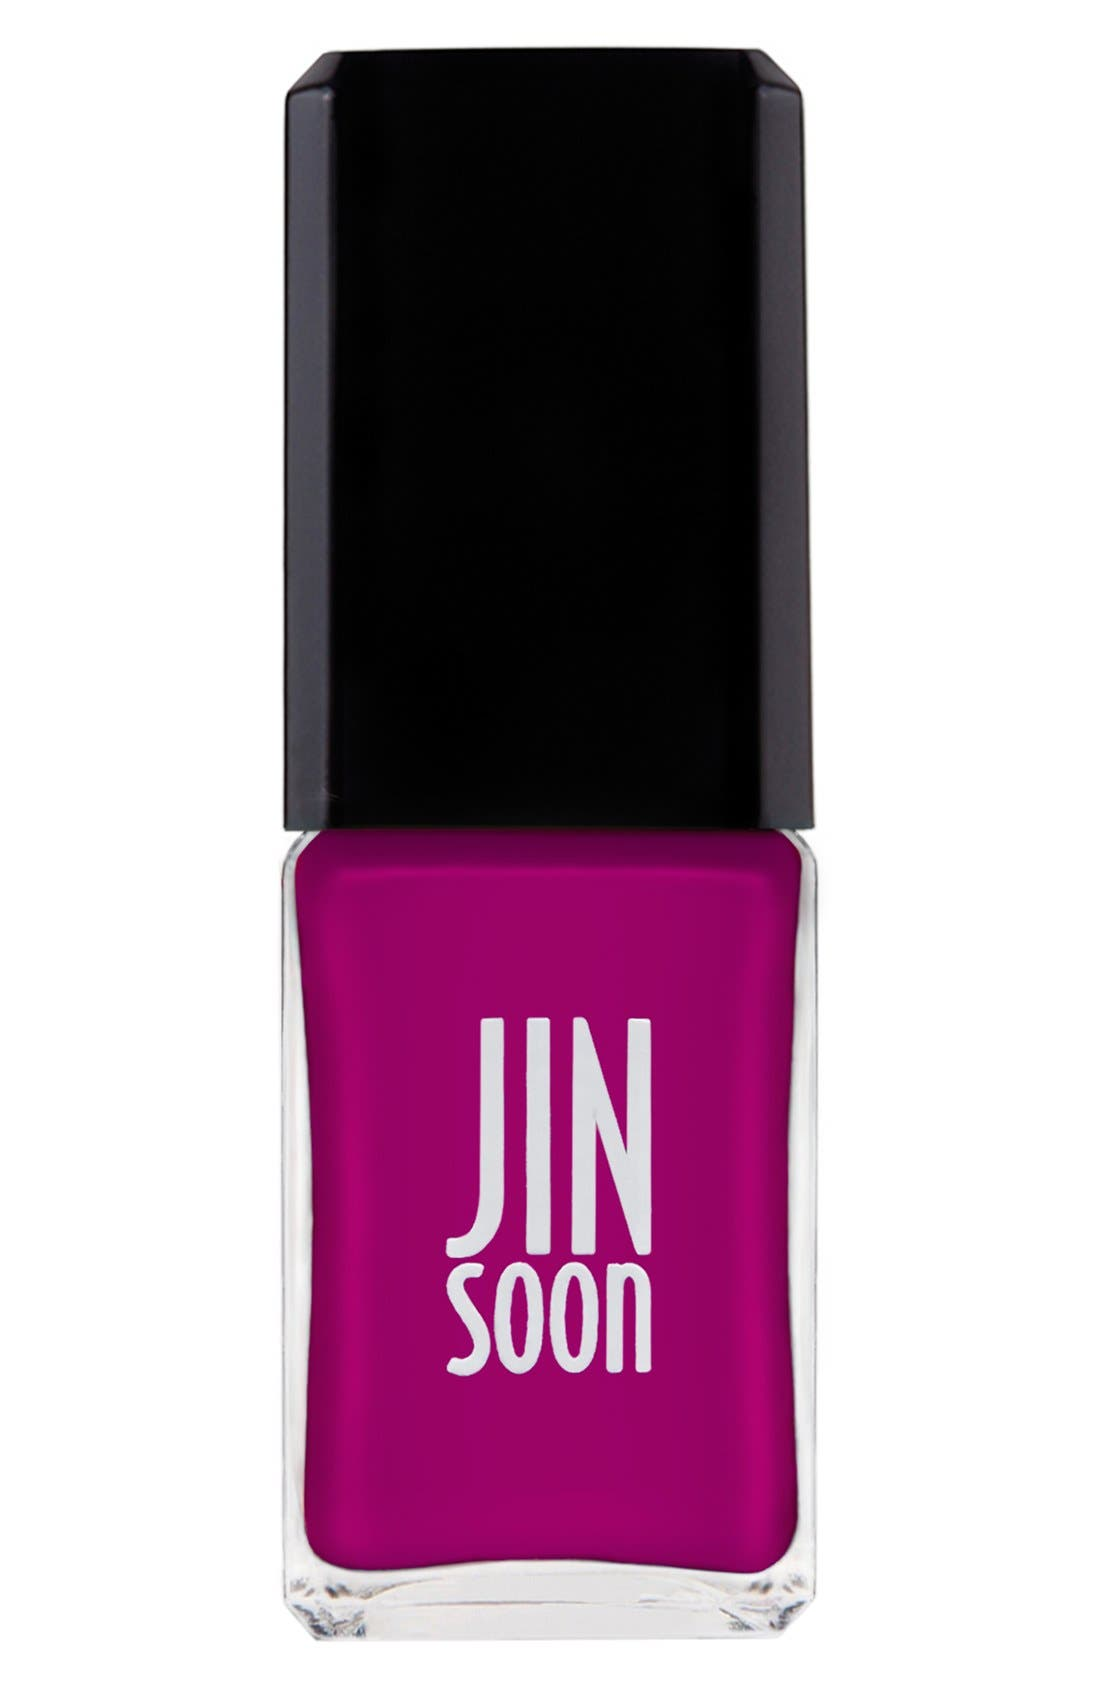 JINsoon 'Farouche' Nail Polish